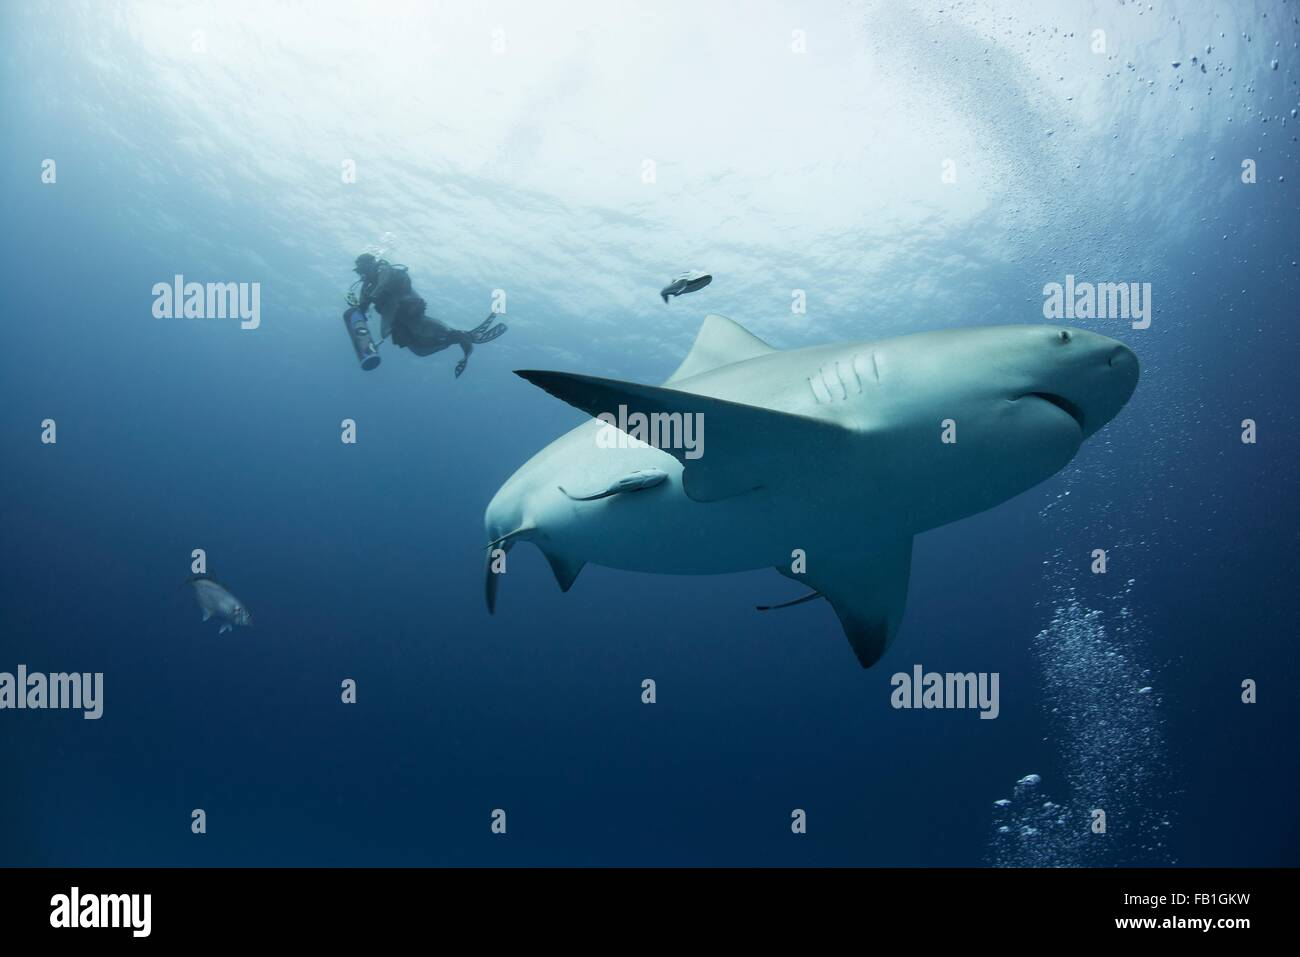 A female bull shark cruises mid water while a diver ascends on the background, Playa del Carmen, Quintana Roo, Mexico - Stock Image